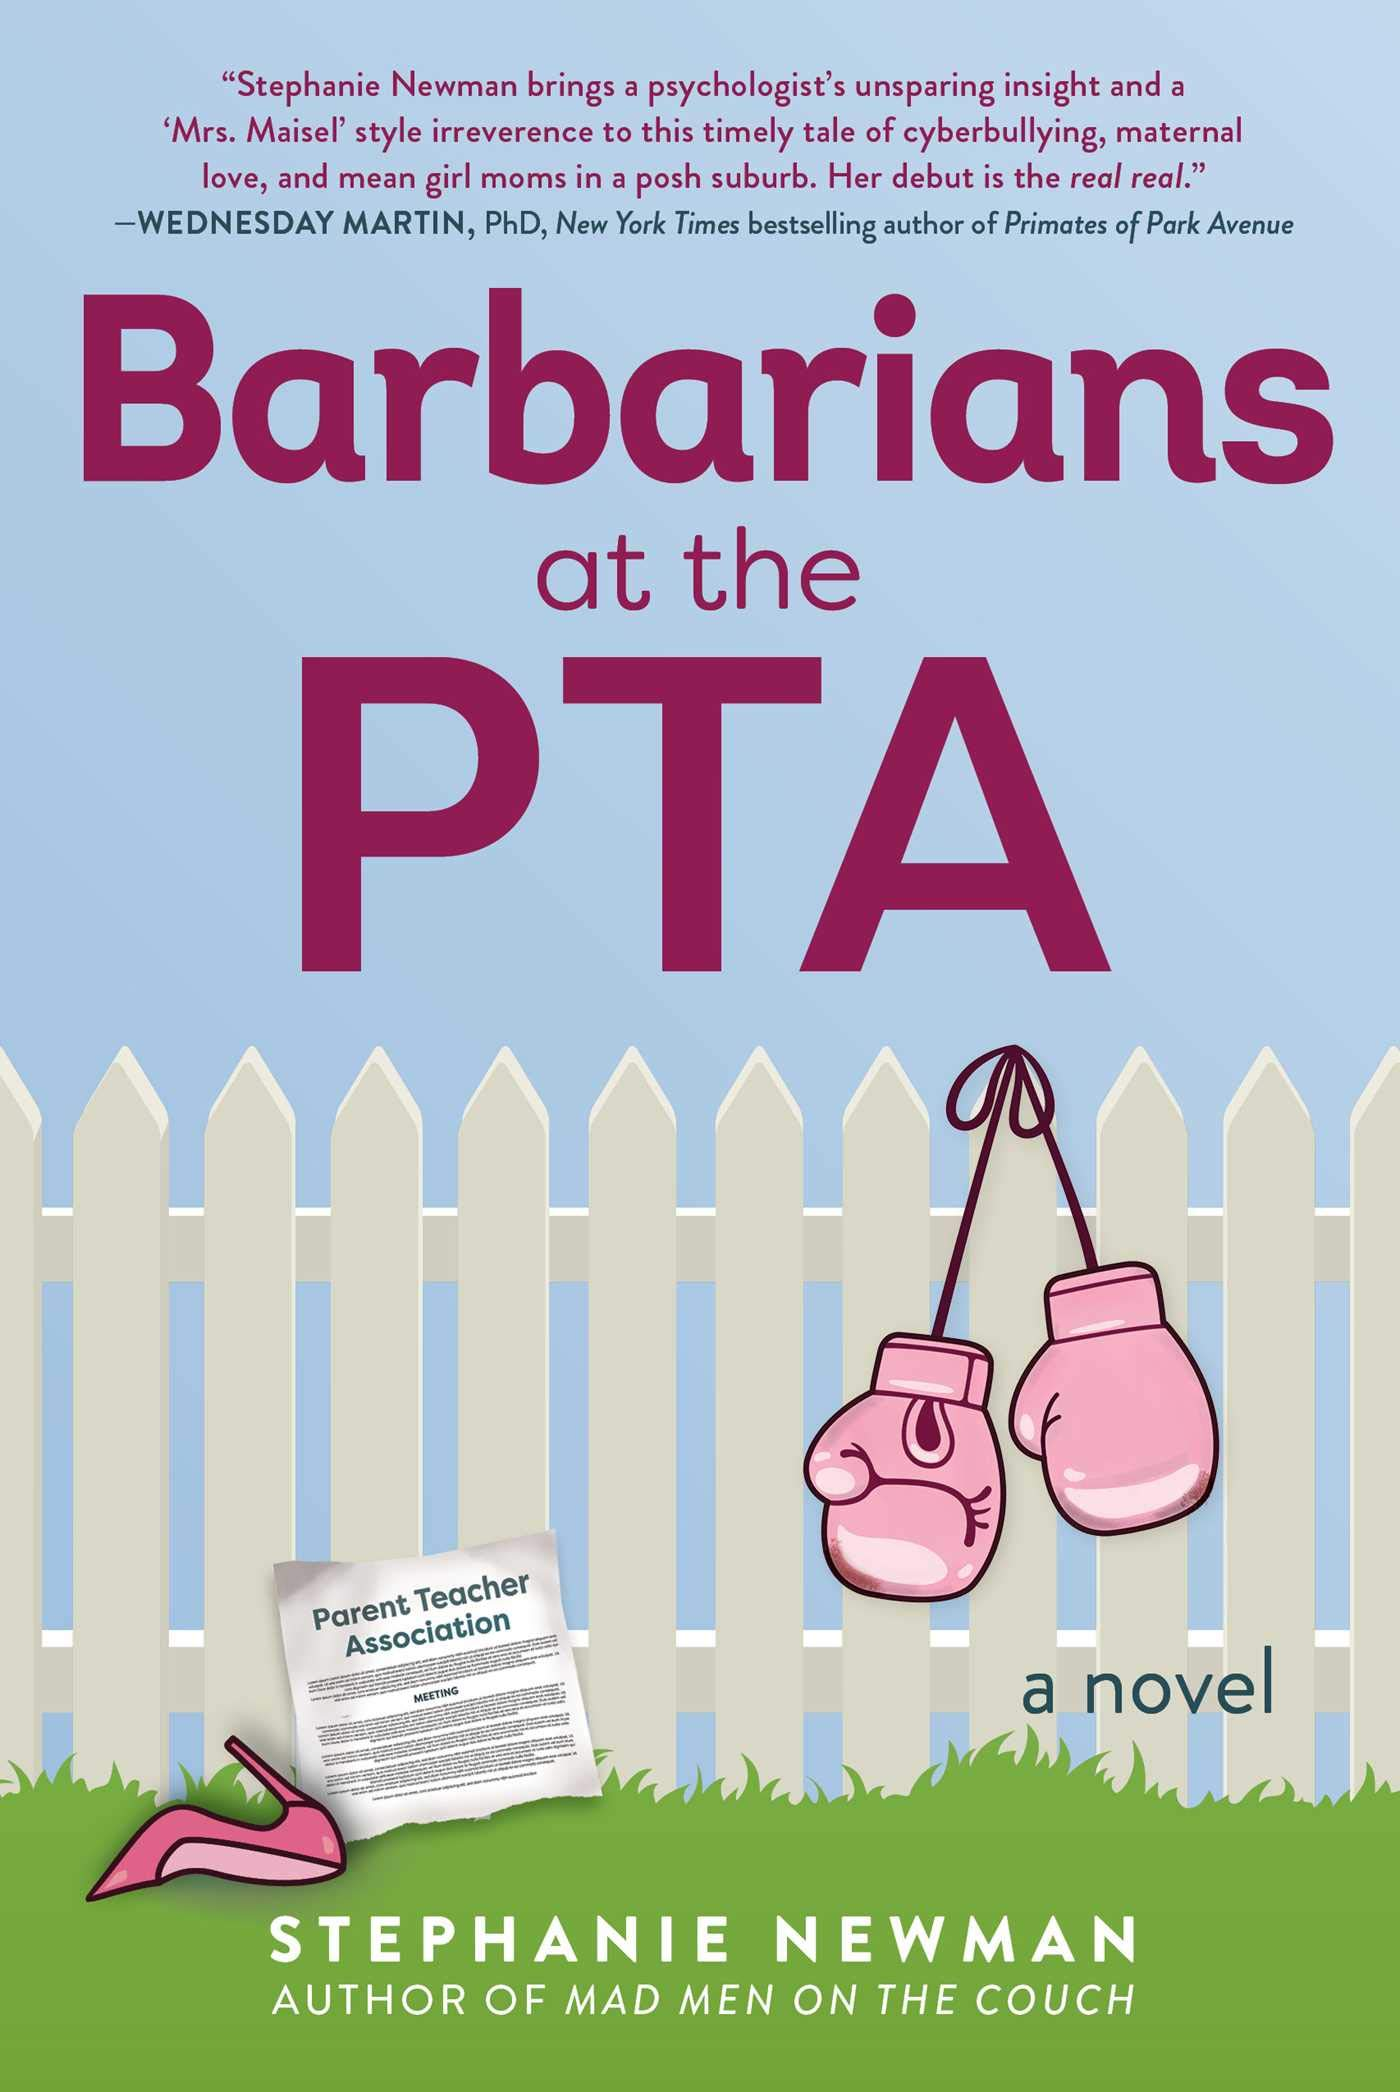 Barbarians at the PTA